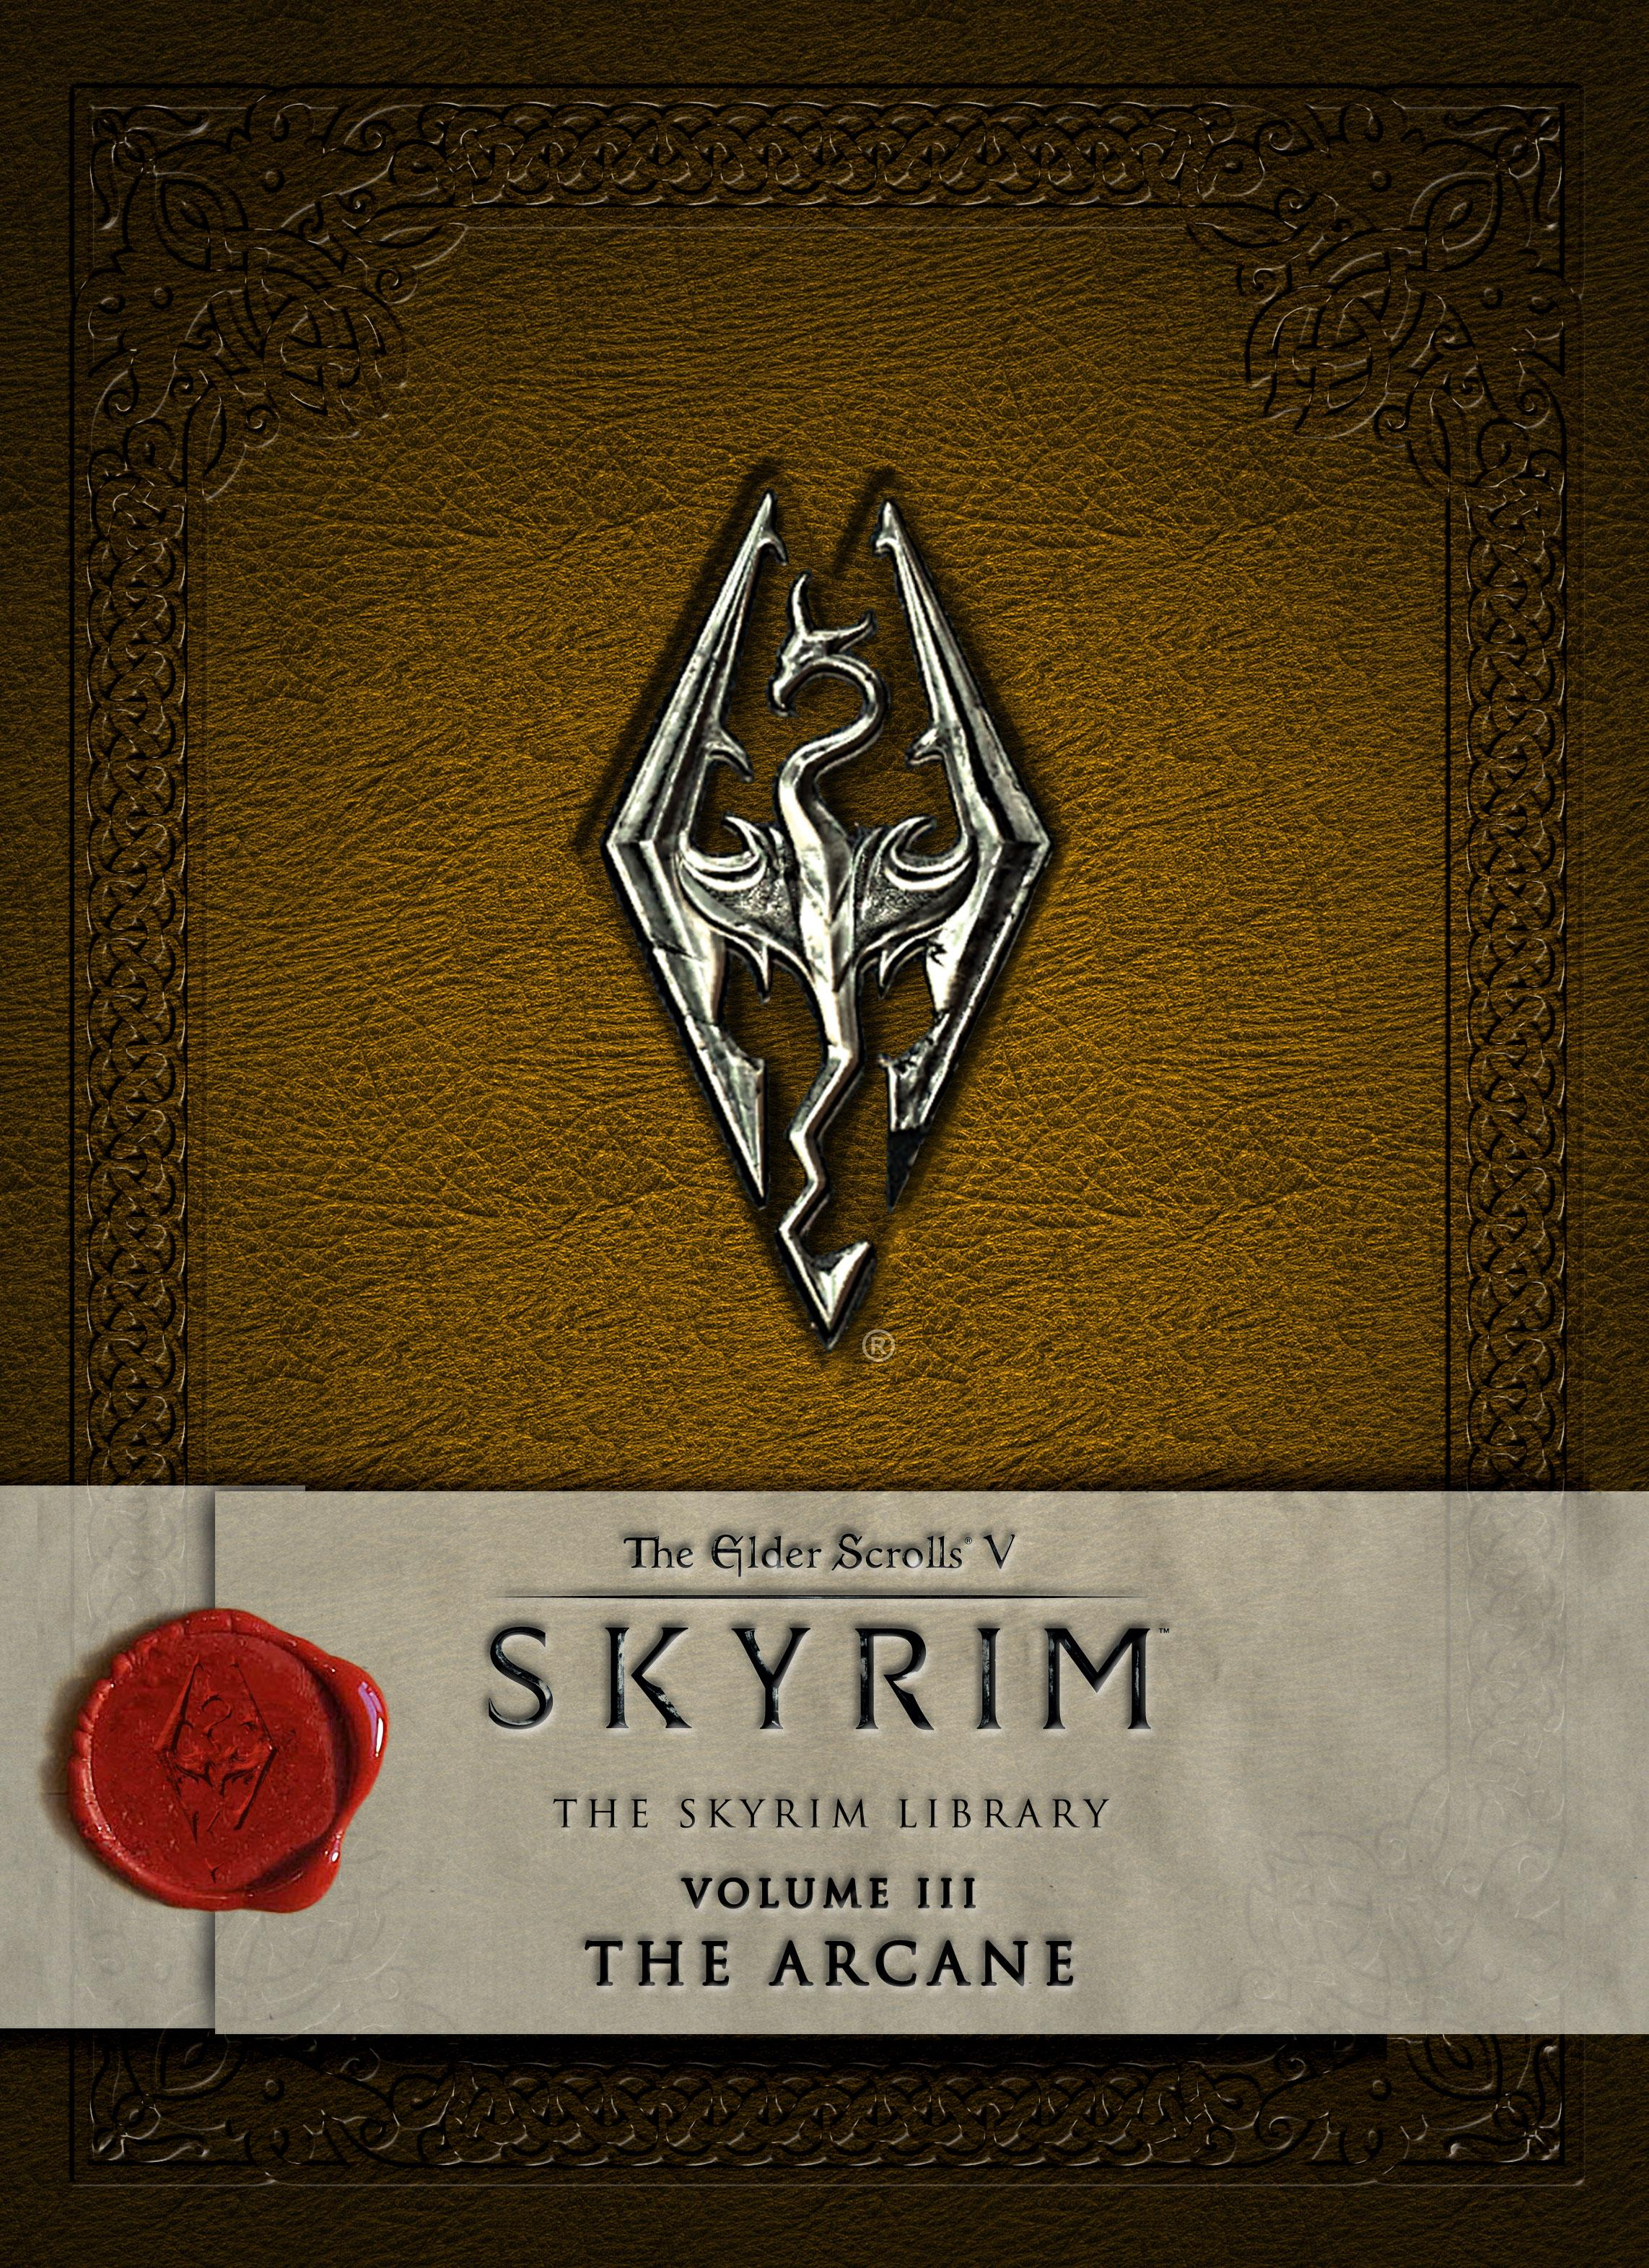 The Elder Scrolls V: Skyrim - The Skyrim Library, Vol. III: The Arcane the elder scrolls v skyrim special edition [pc цифровая версия] цифровая версия